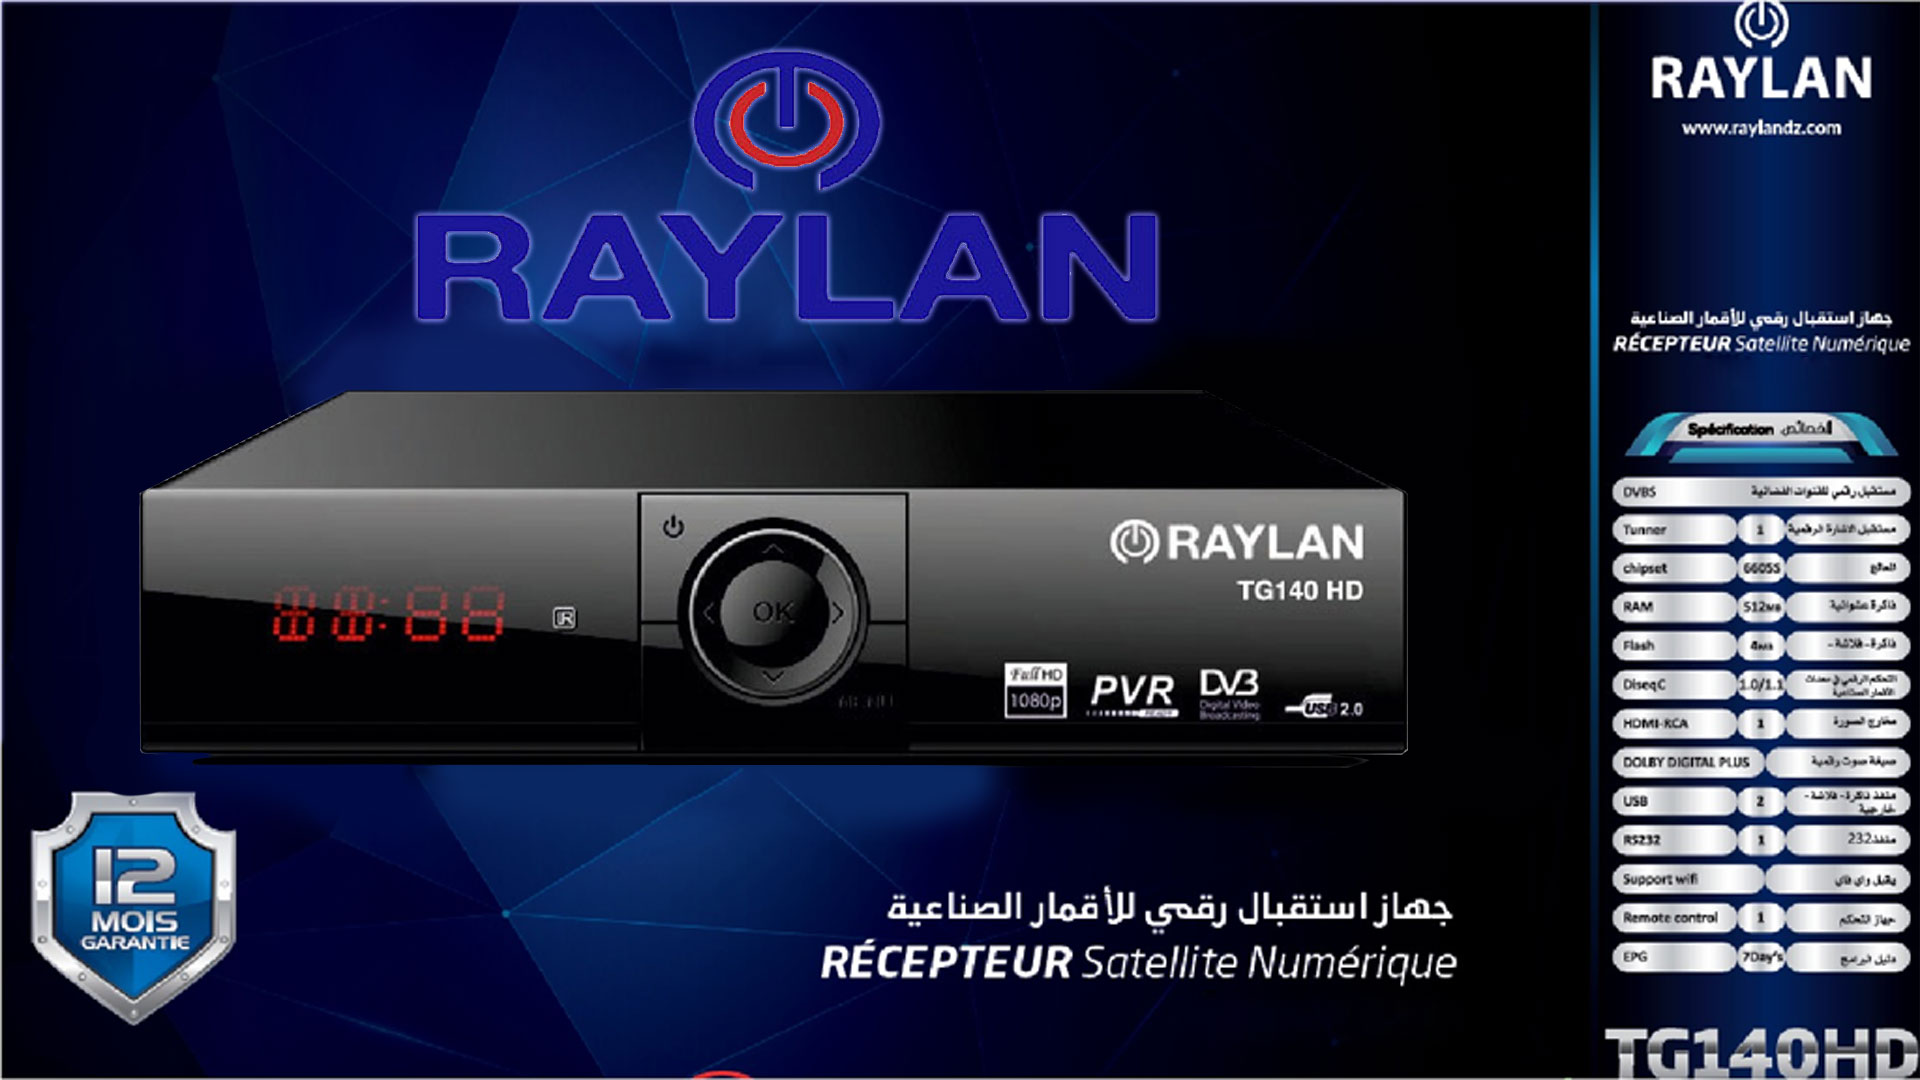 Download Software Raylan TG140 HD New Update Firmware Receiver